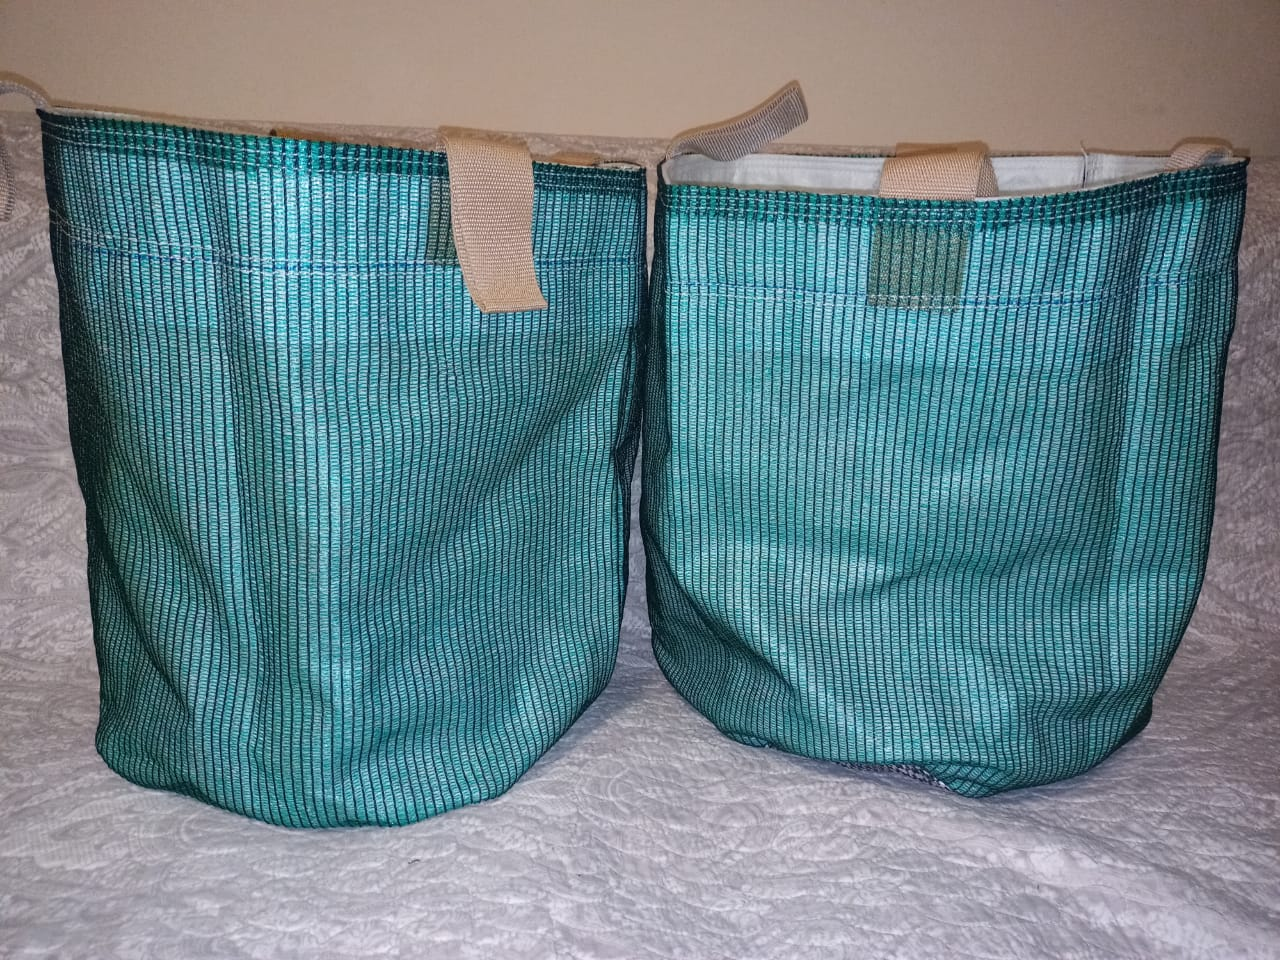 Growbags for sale